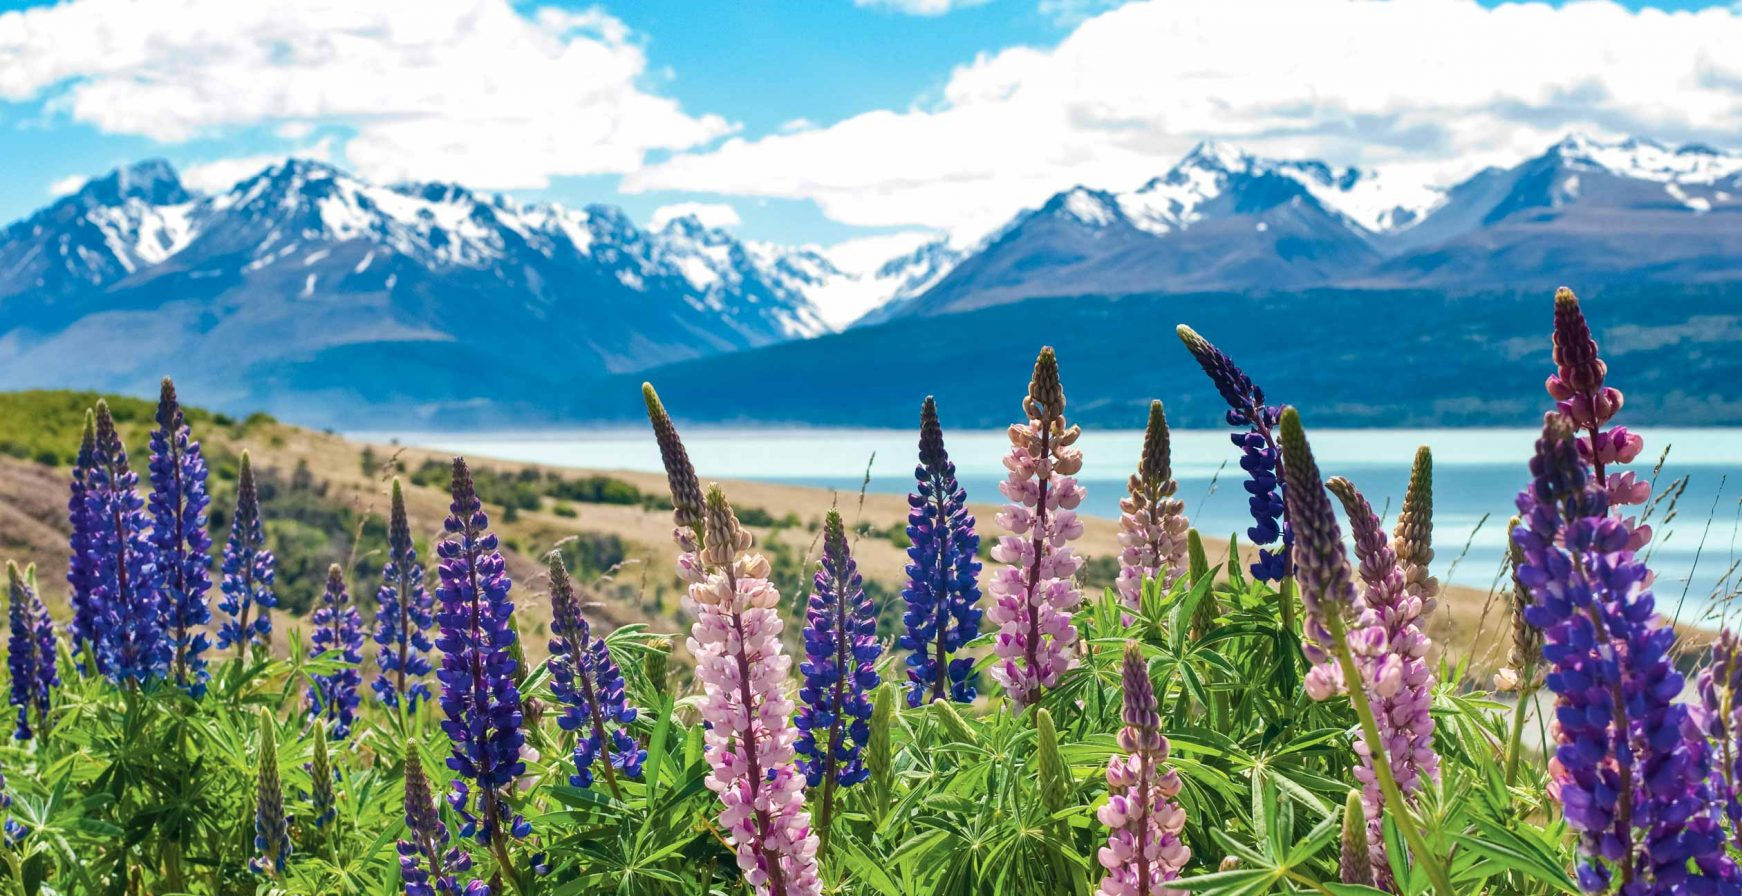 Flowers by mountains on New Zealand Bike Tour